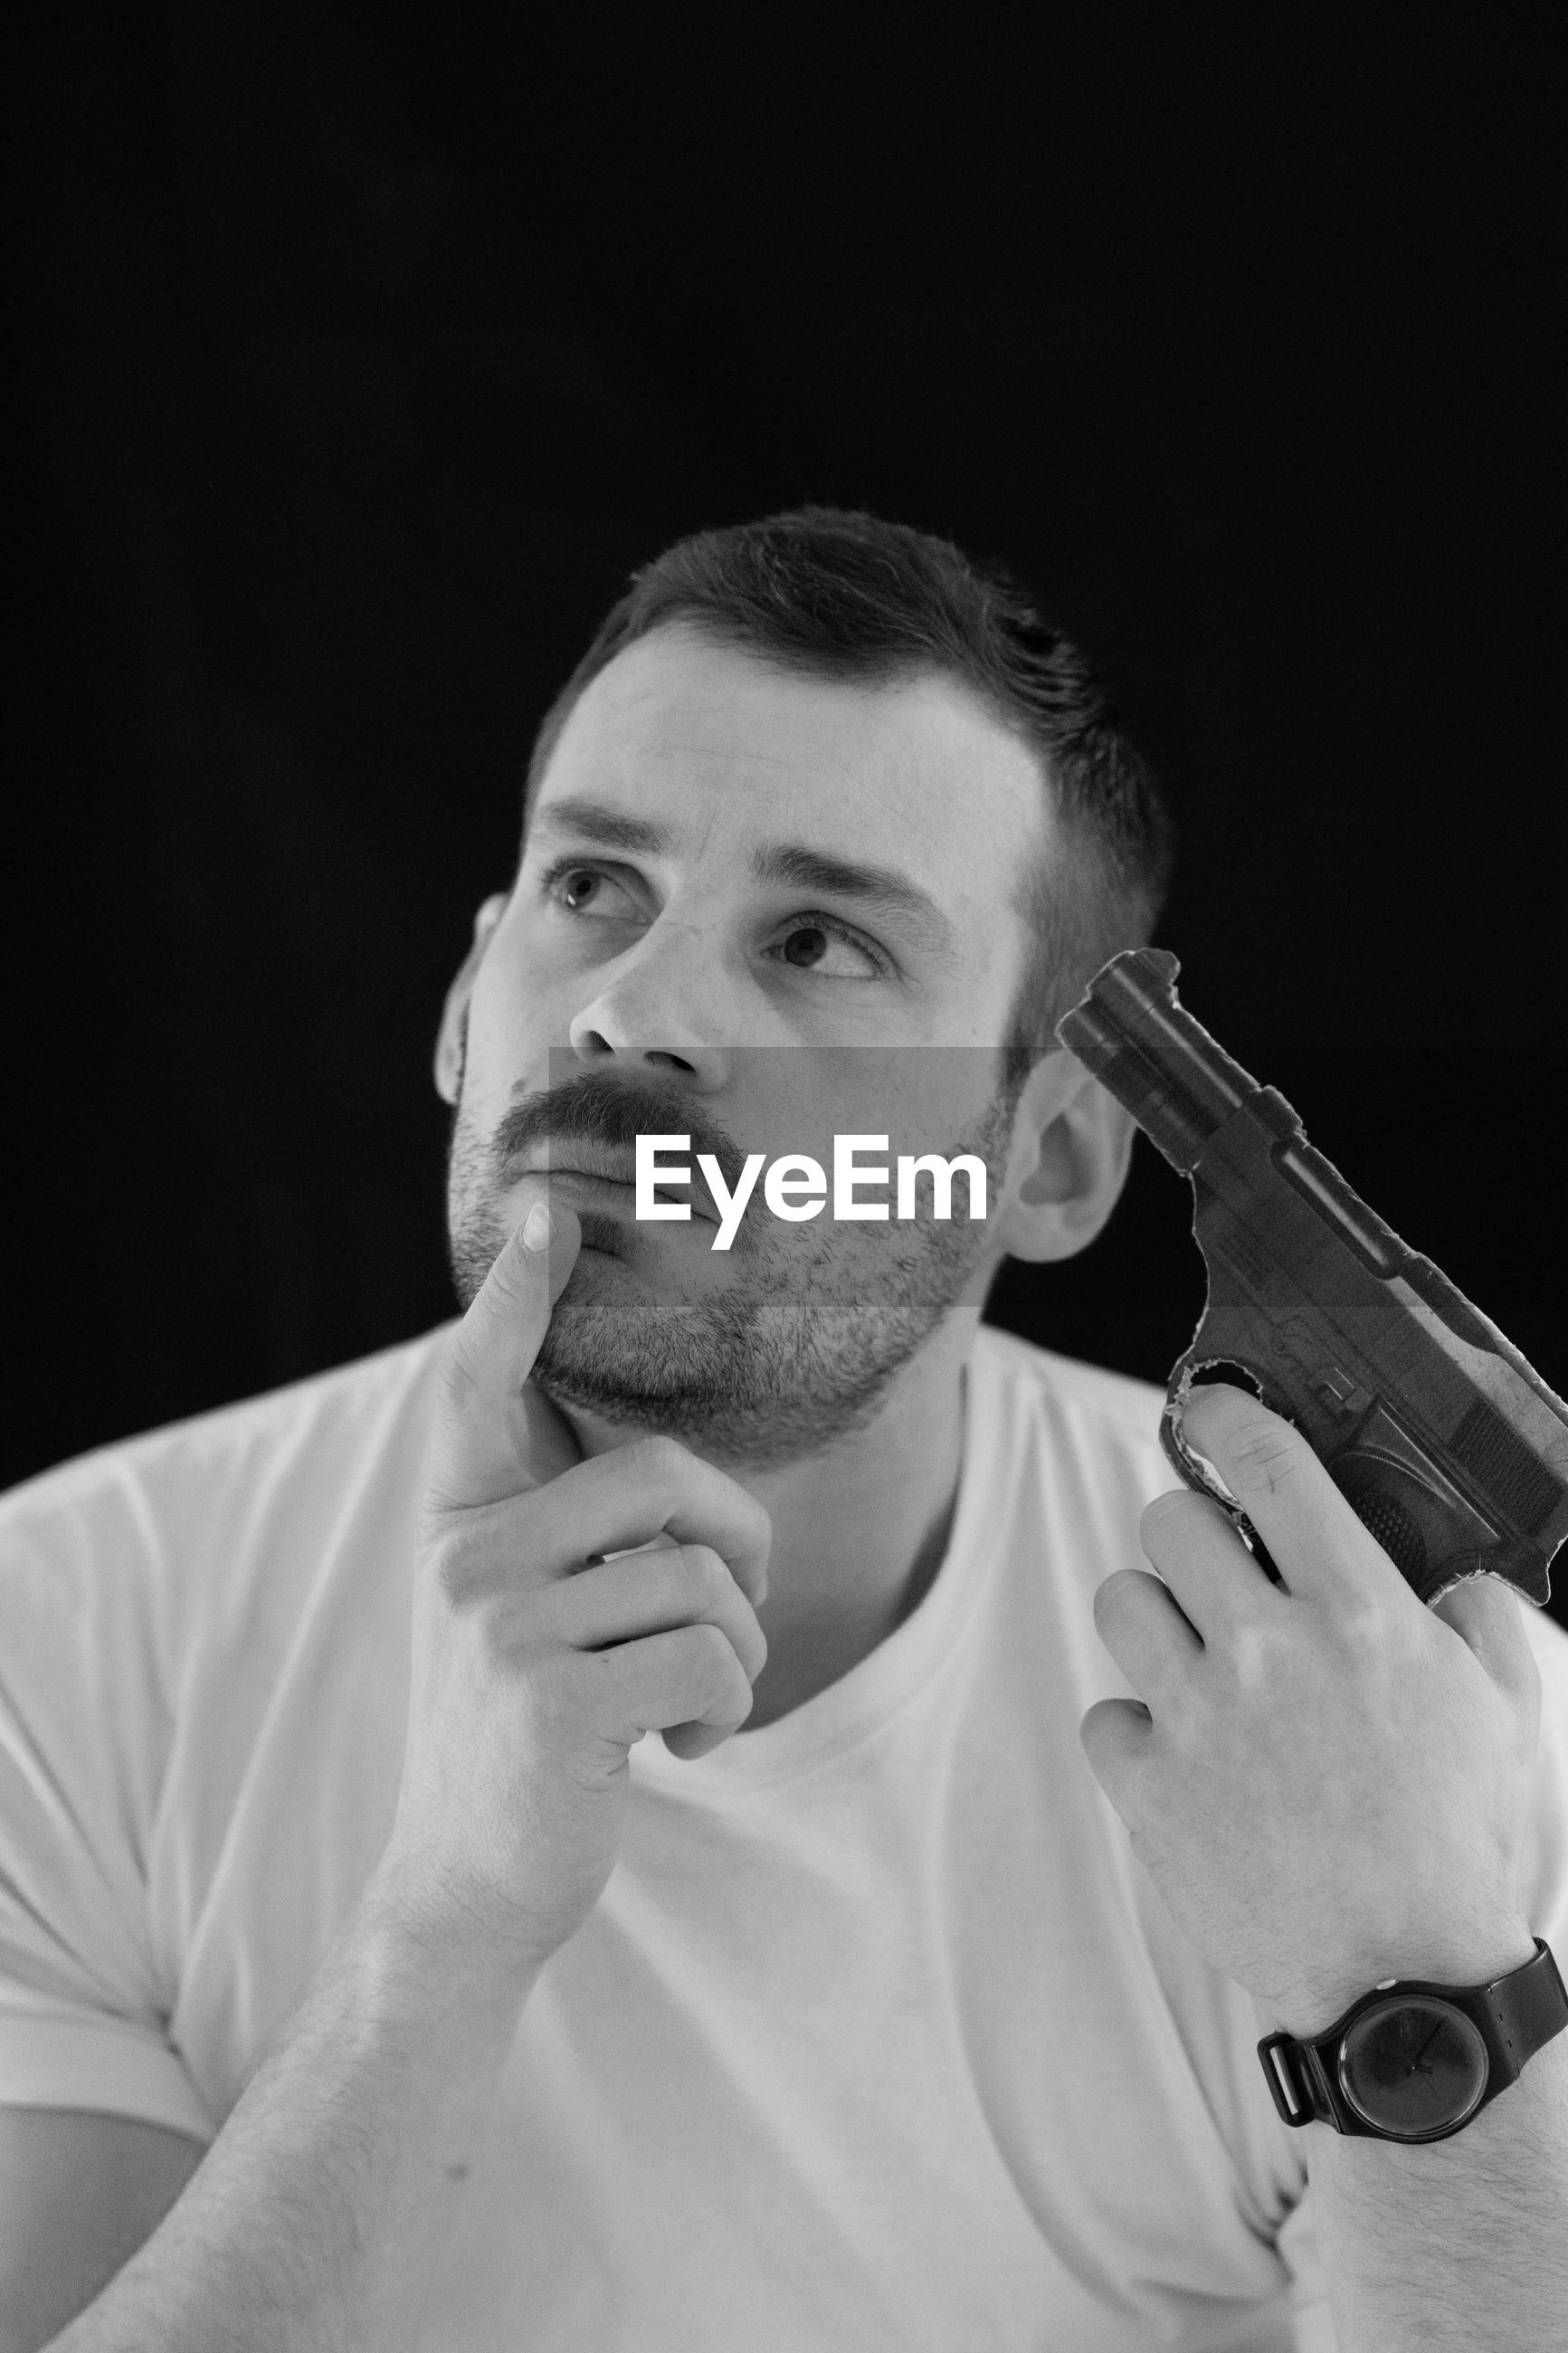 Thoughtful man attempting suicide with gun against black background